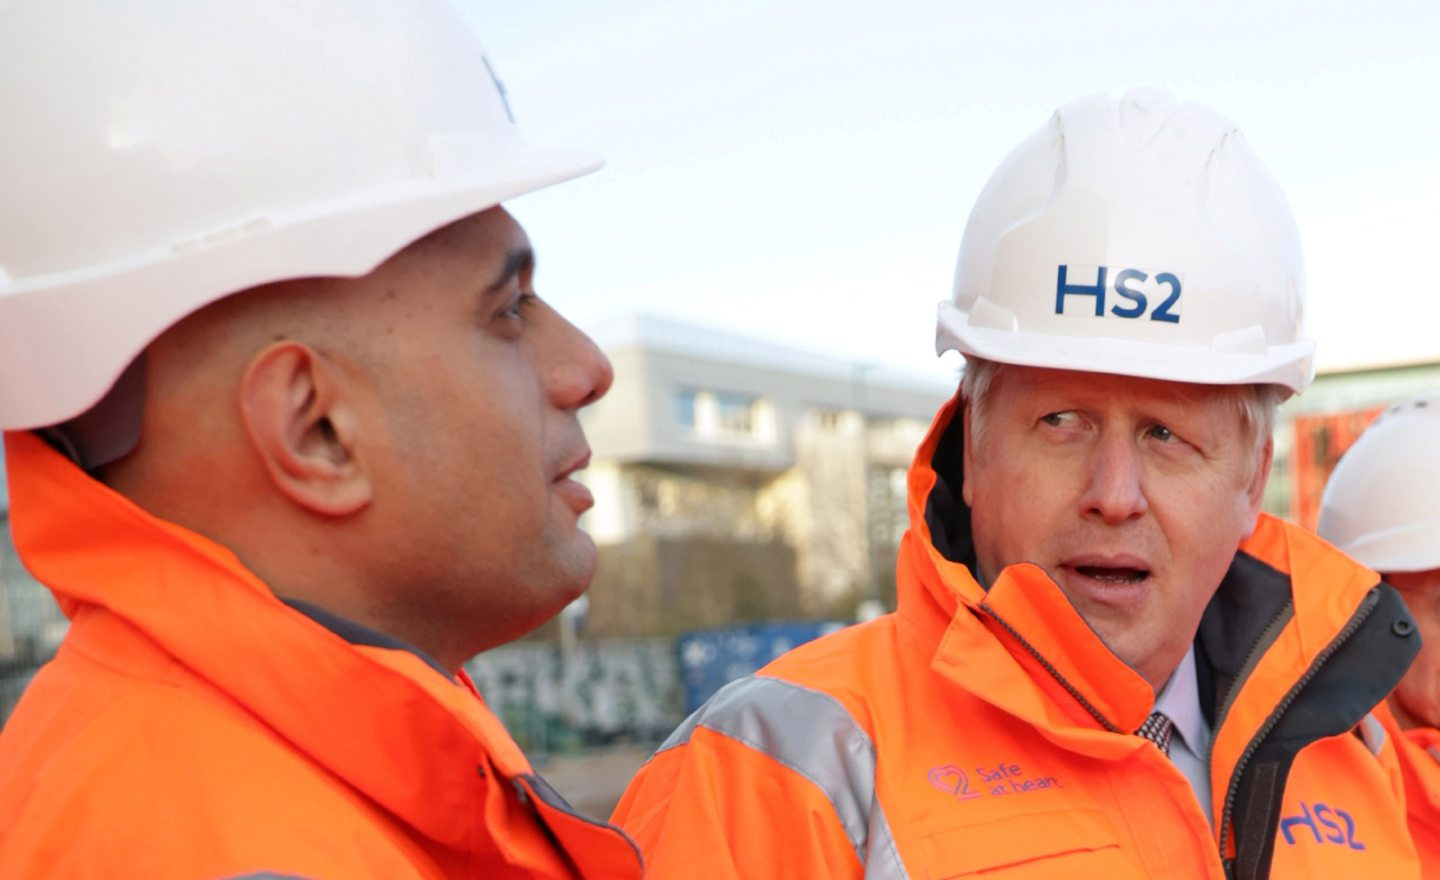 Sajid Javid (left) has become the most high-profile victim of Boris Johnson's plan to take control of Government.